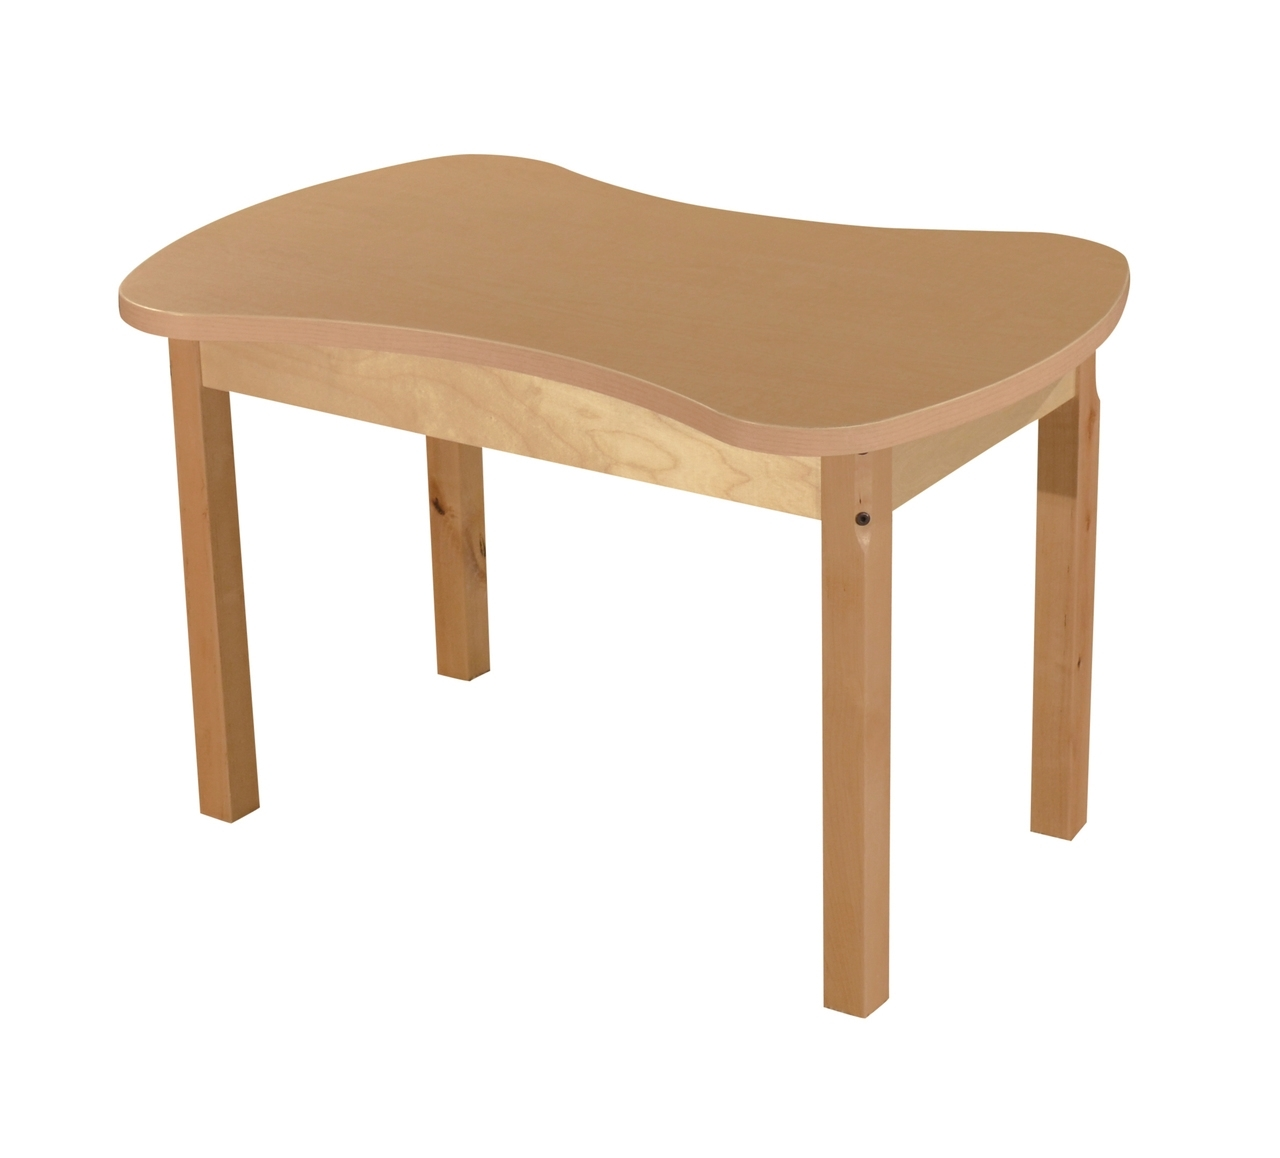 Synergy Junction 24 Inch X 36 High Pressure Laminate Table With Hardwood Legs- 14 - Hpl2436c14 - Collaboration Tables And Desks HPL2436C14